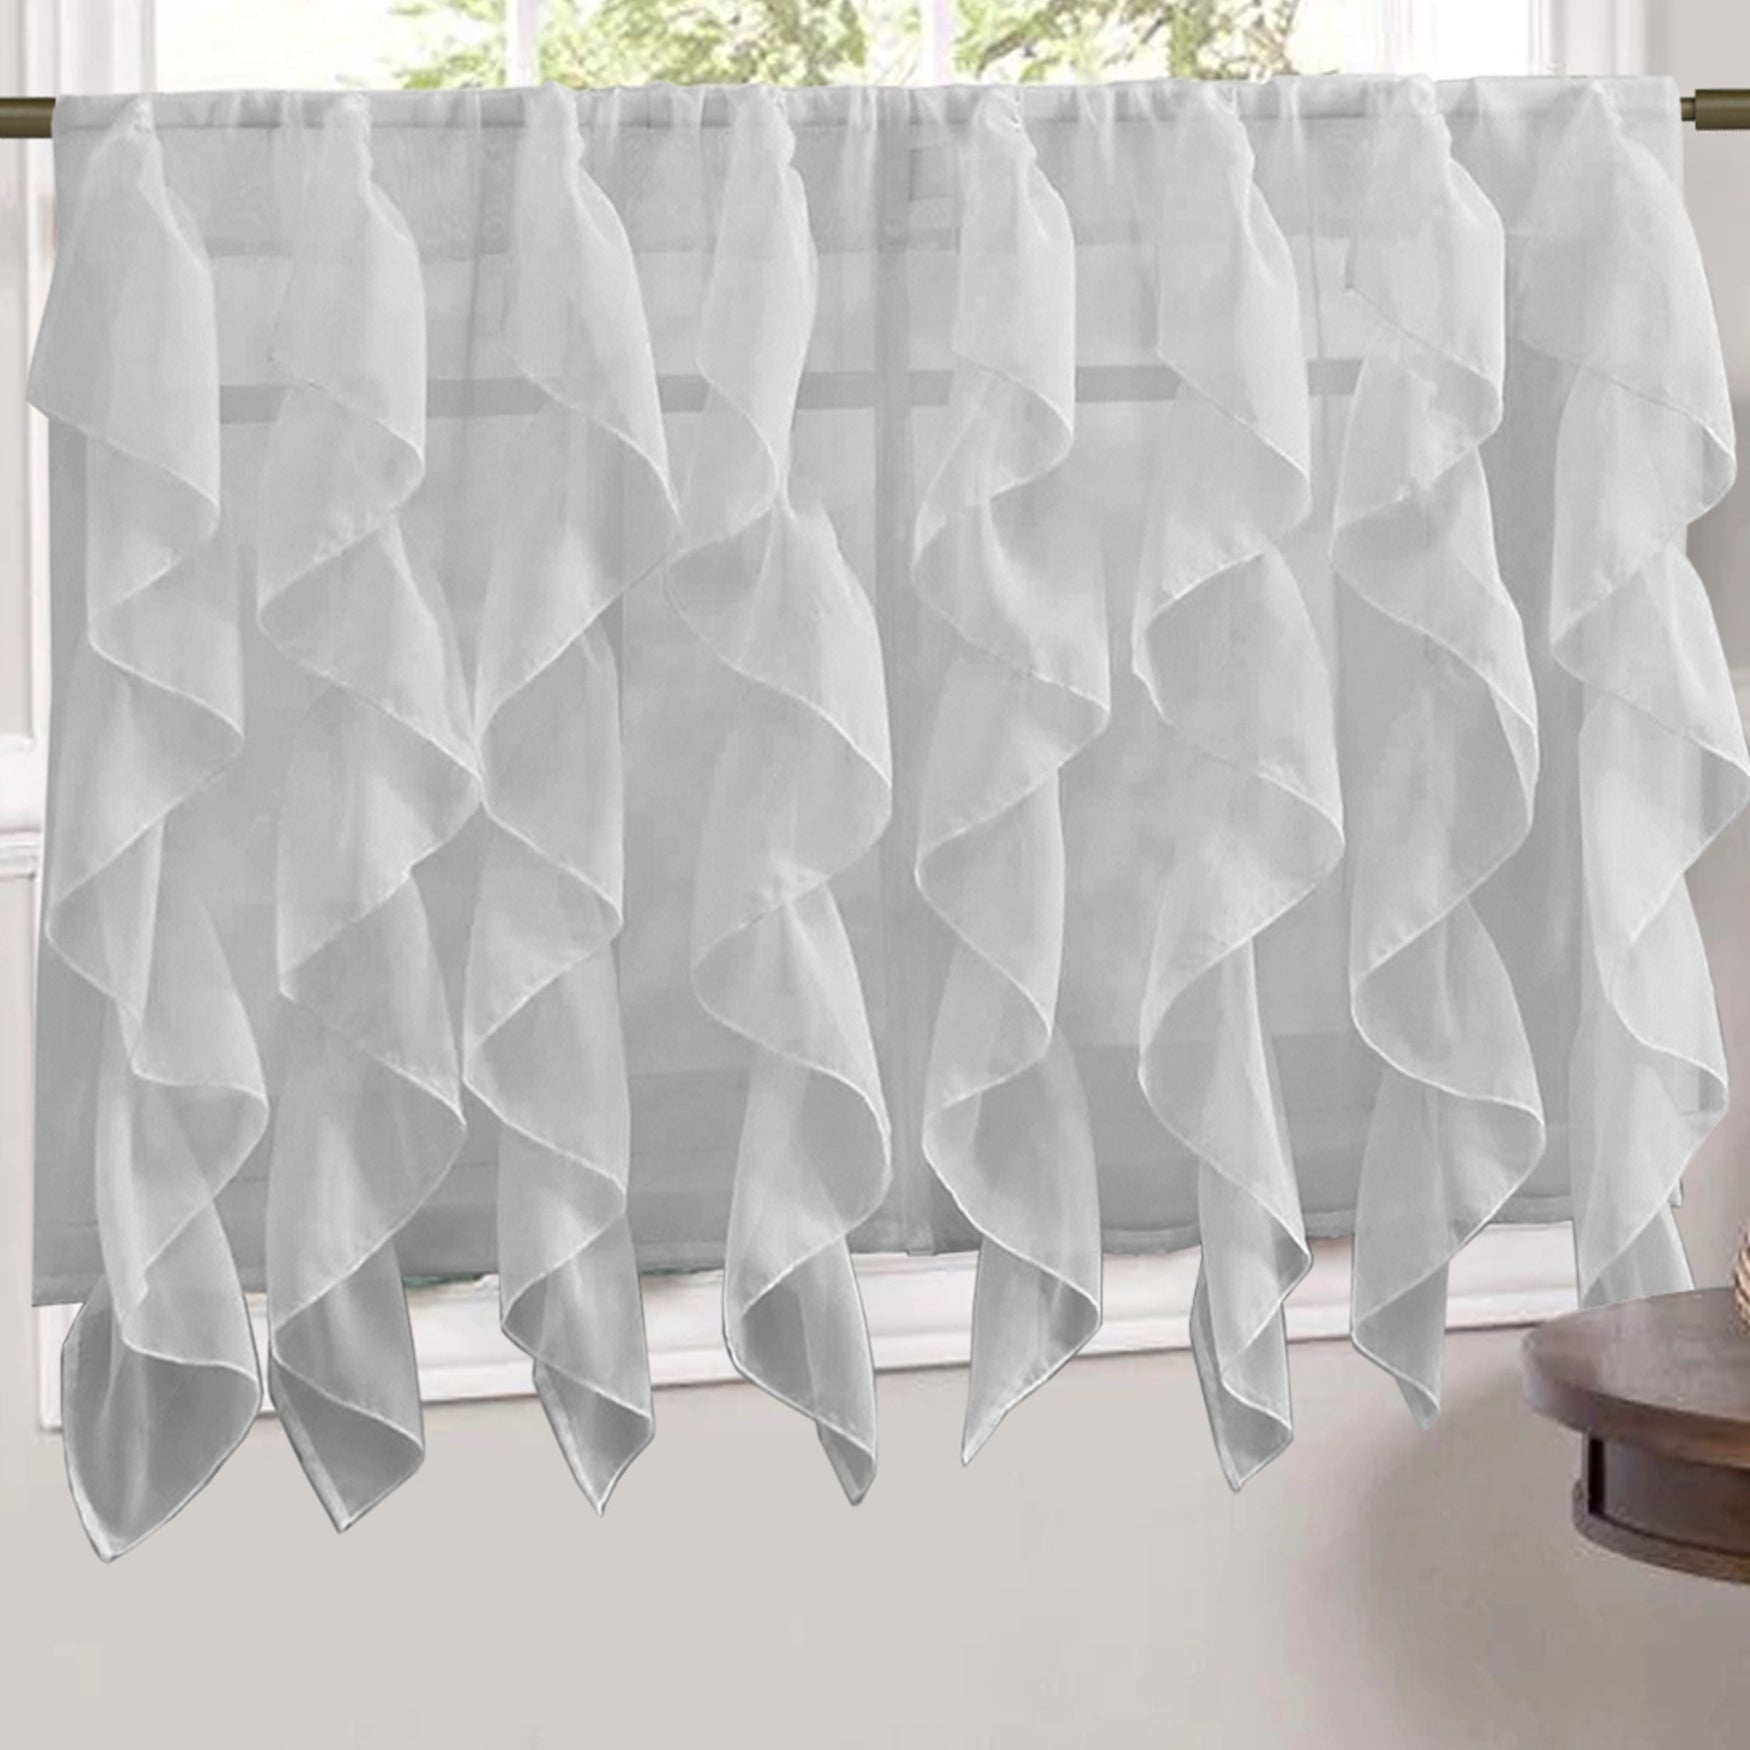 Sweet Home Collection Silver Vertical Ruffled Waterfall Valance And Curtain Tiers With Regard To Silver Vertical Ruffled Waterfall Valance And Curtain Tiers (View 13 of 20)